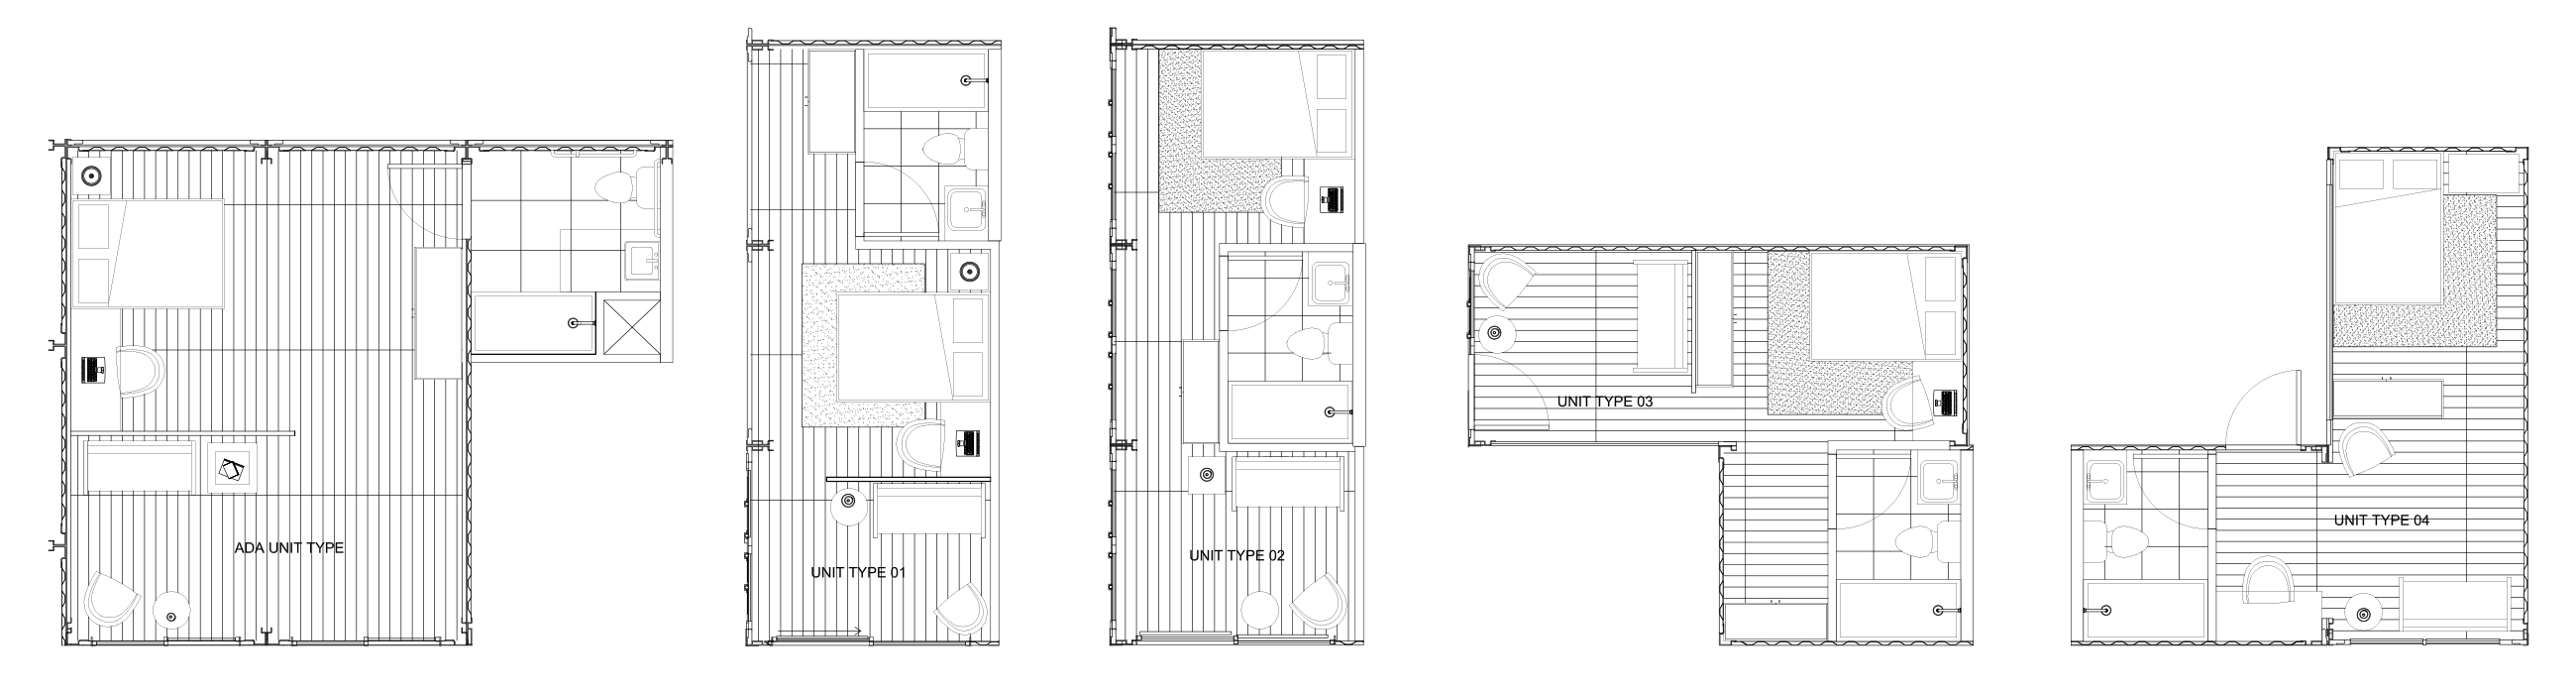 Shipping Container Village Living Space Floor Plans, shipping container structures, shipping container homes, eco-living in shipping containers